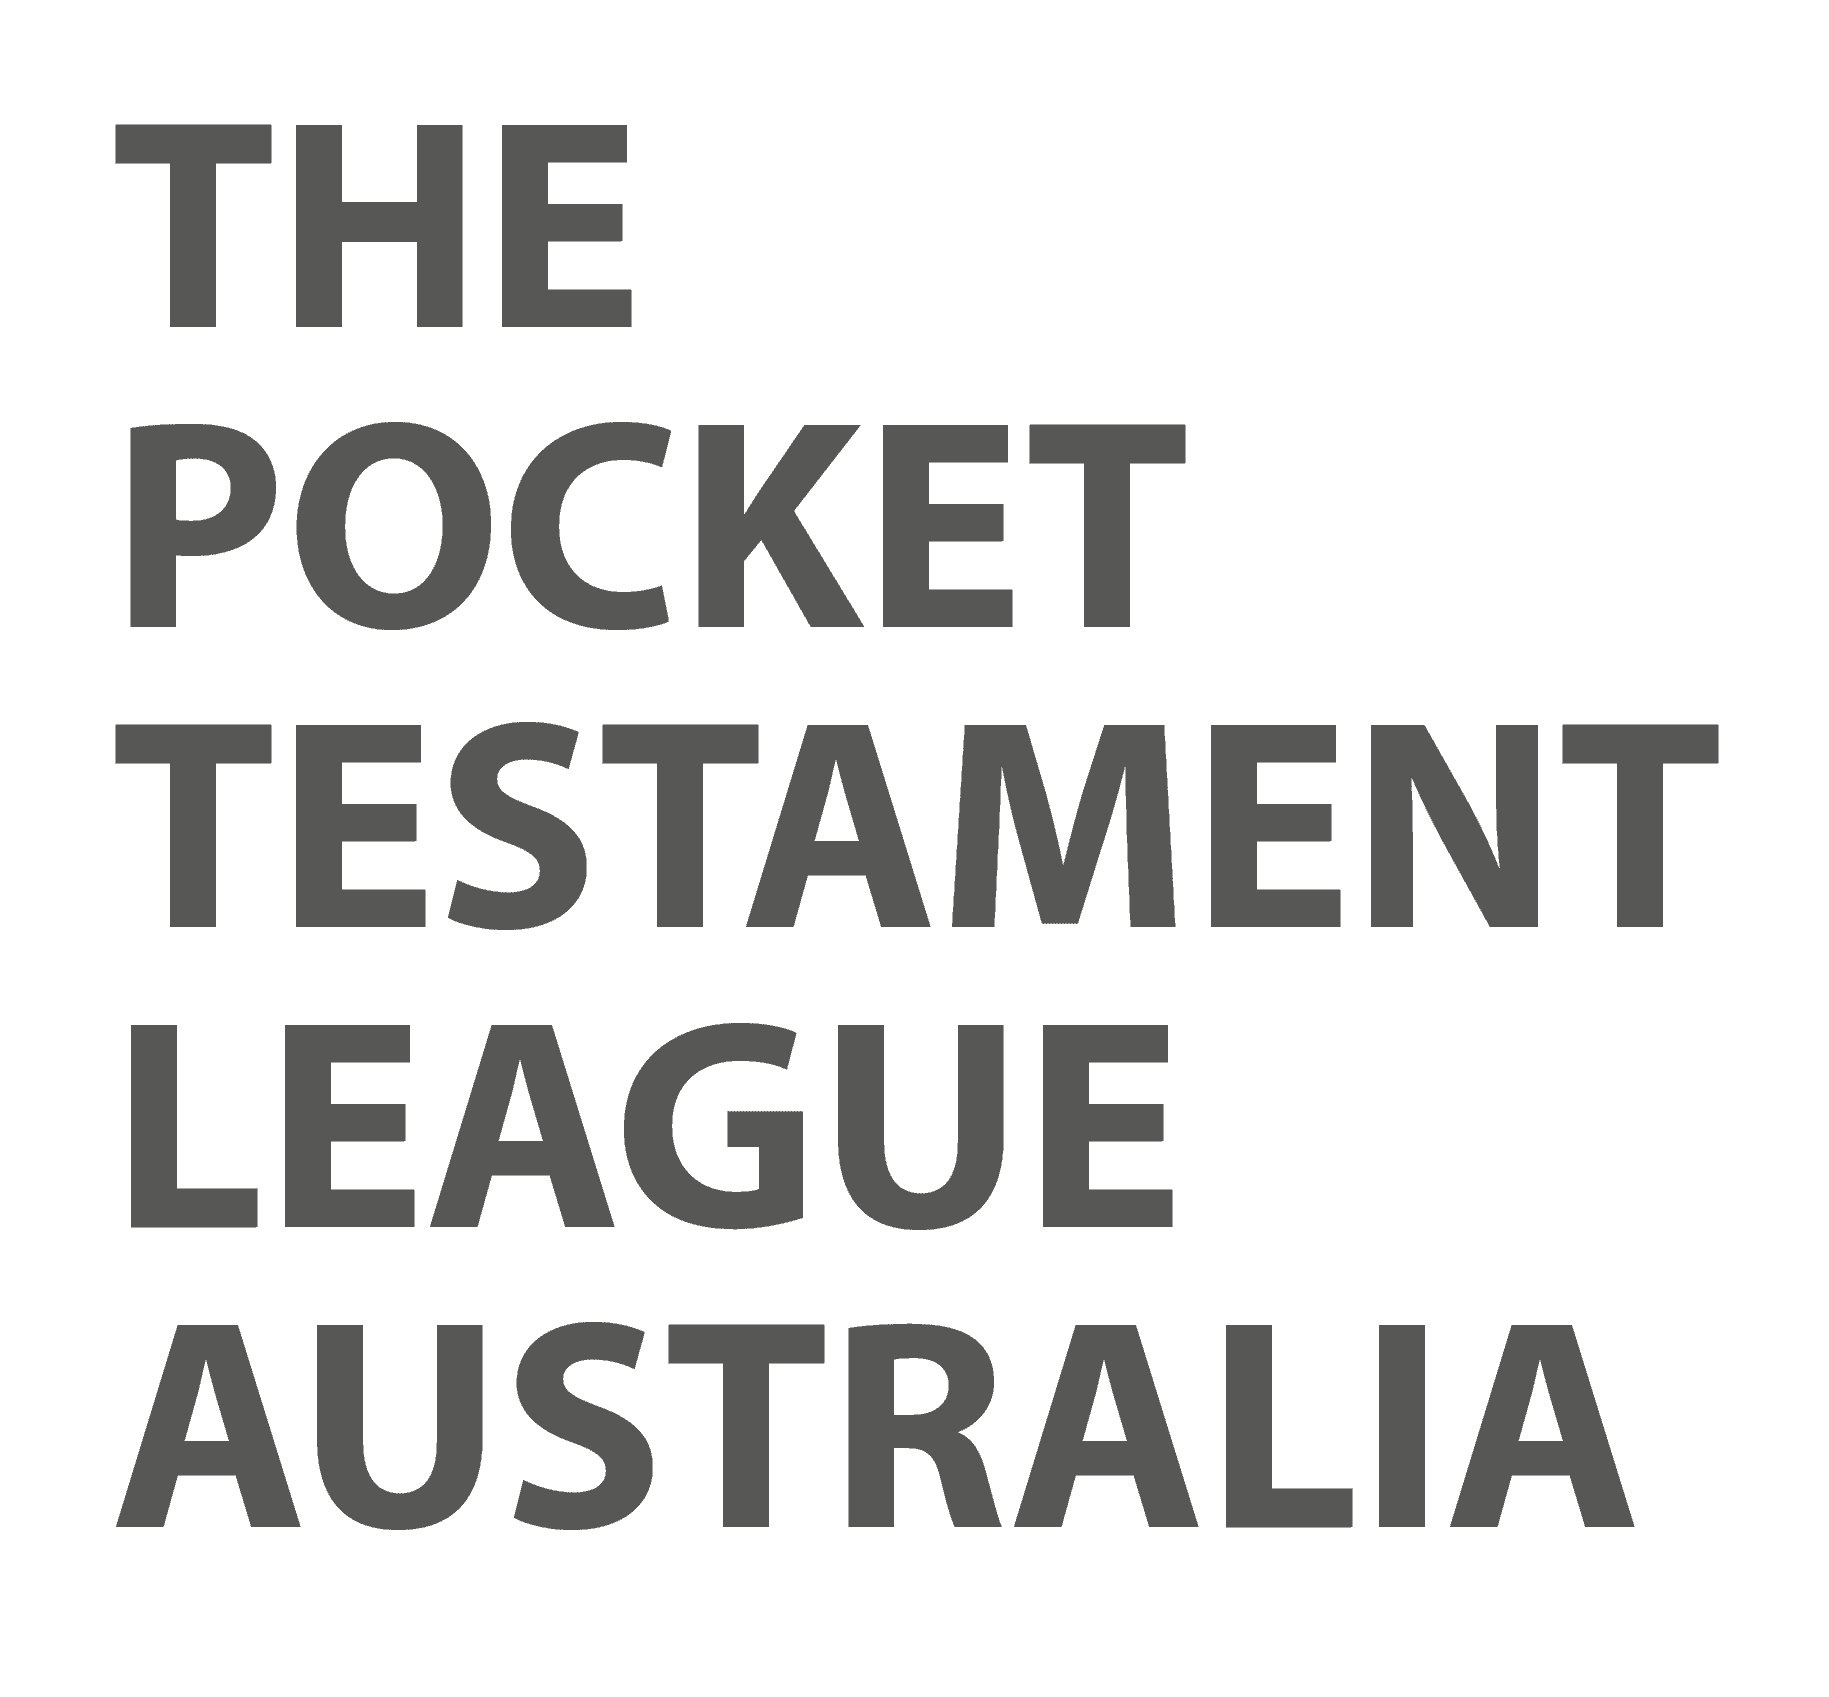 The Pocket Testament League Australia